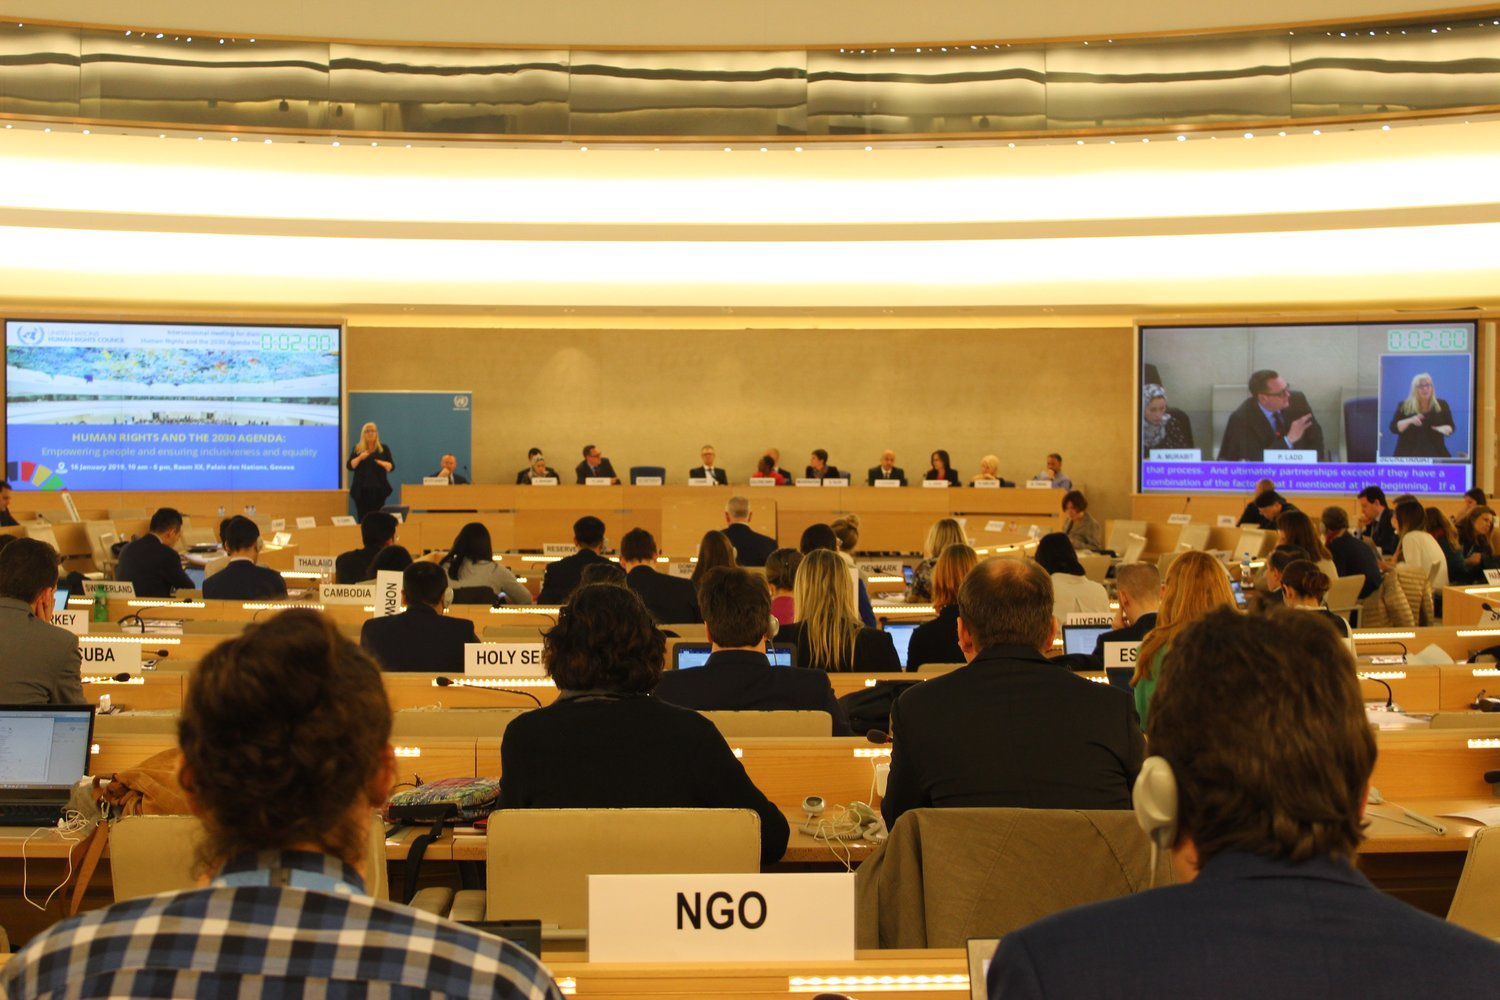 Panel discussion on strong and meaningful partnerships between human rights and the SDGs, at the Human Rights Council Intersessional Meeting on the 2030 Agenda (16th January 2019).